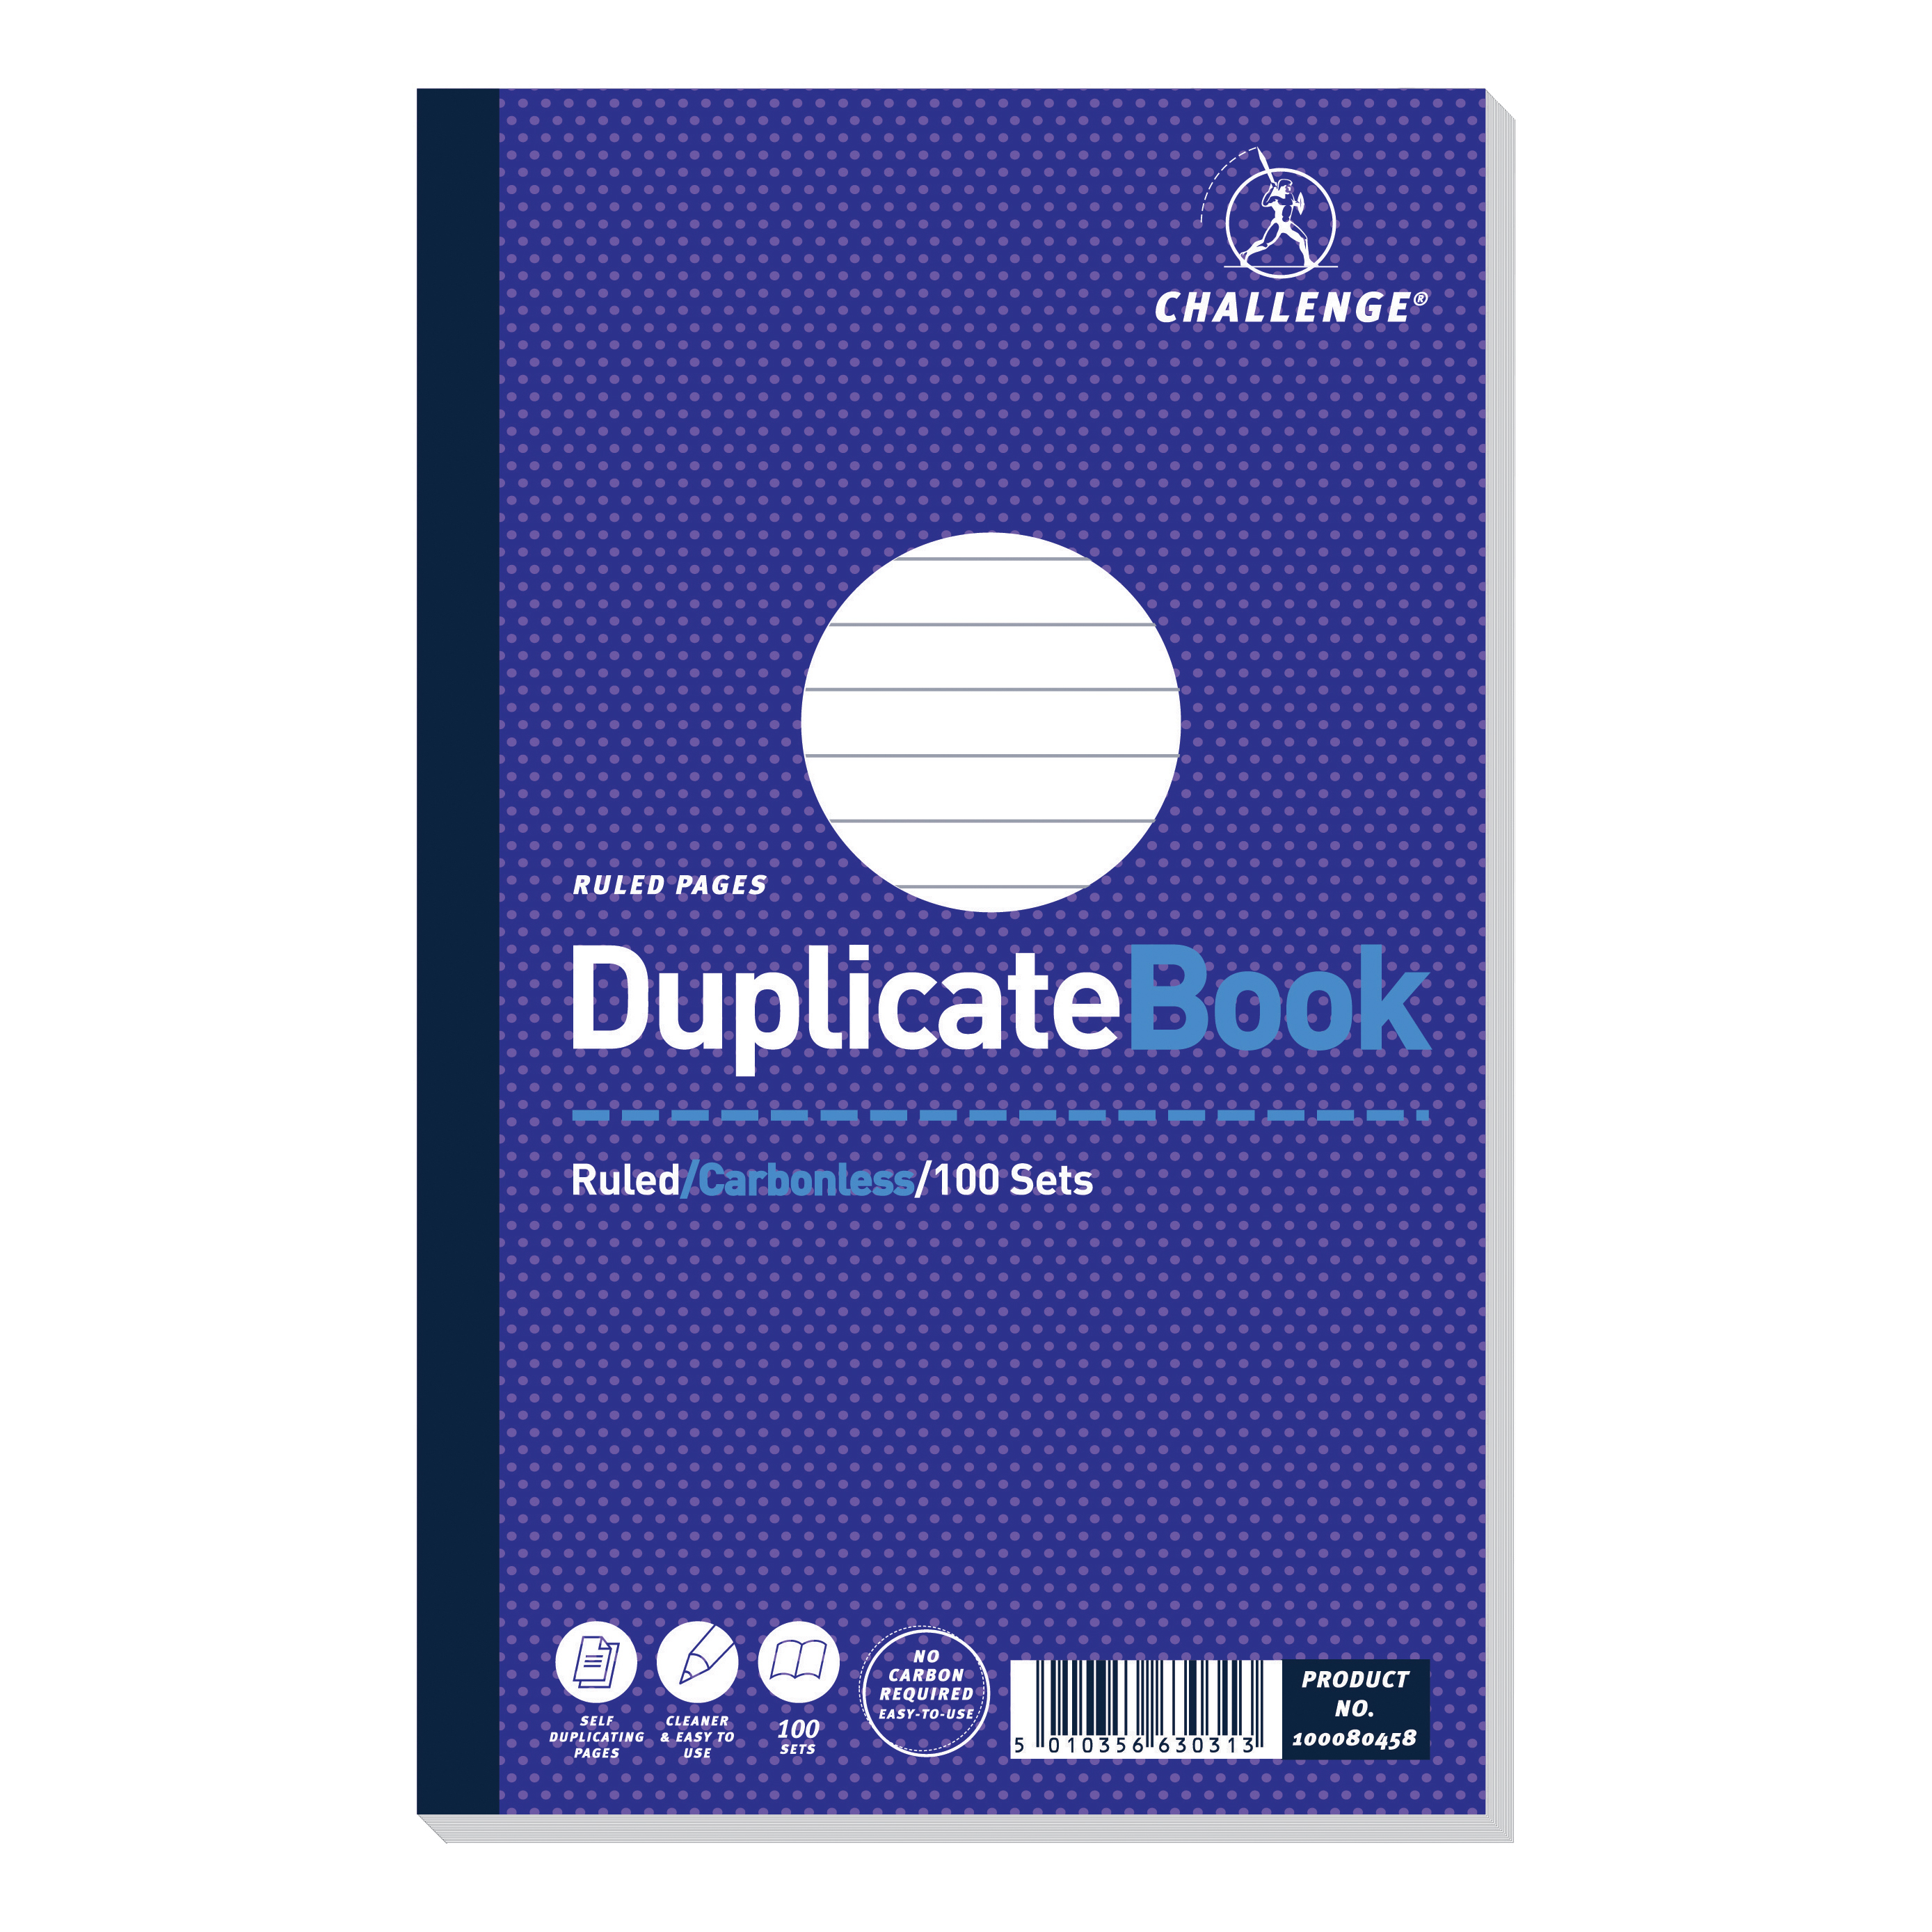 Challenge Duplicate Book Carbonless Ruled 100 Sets 210x130mm Ref 100080458 Pack 5